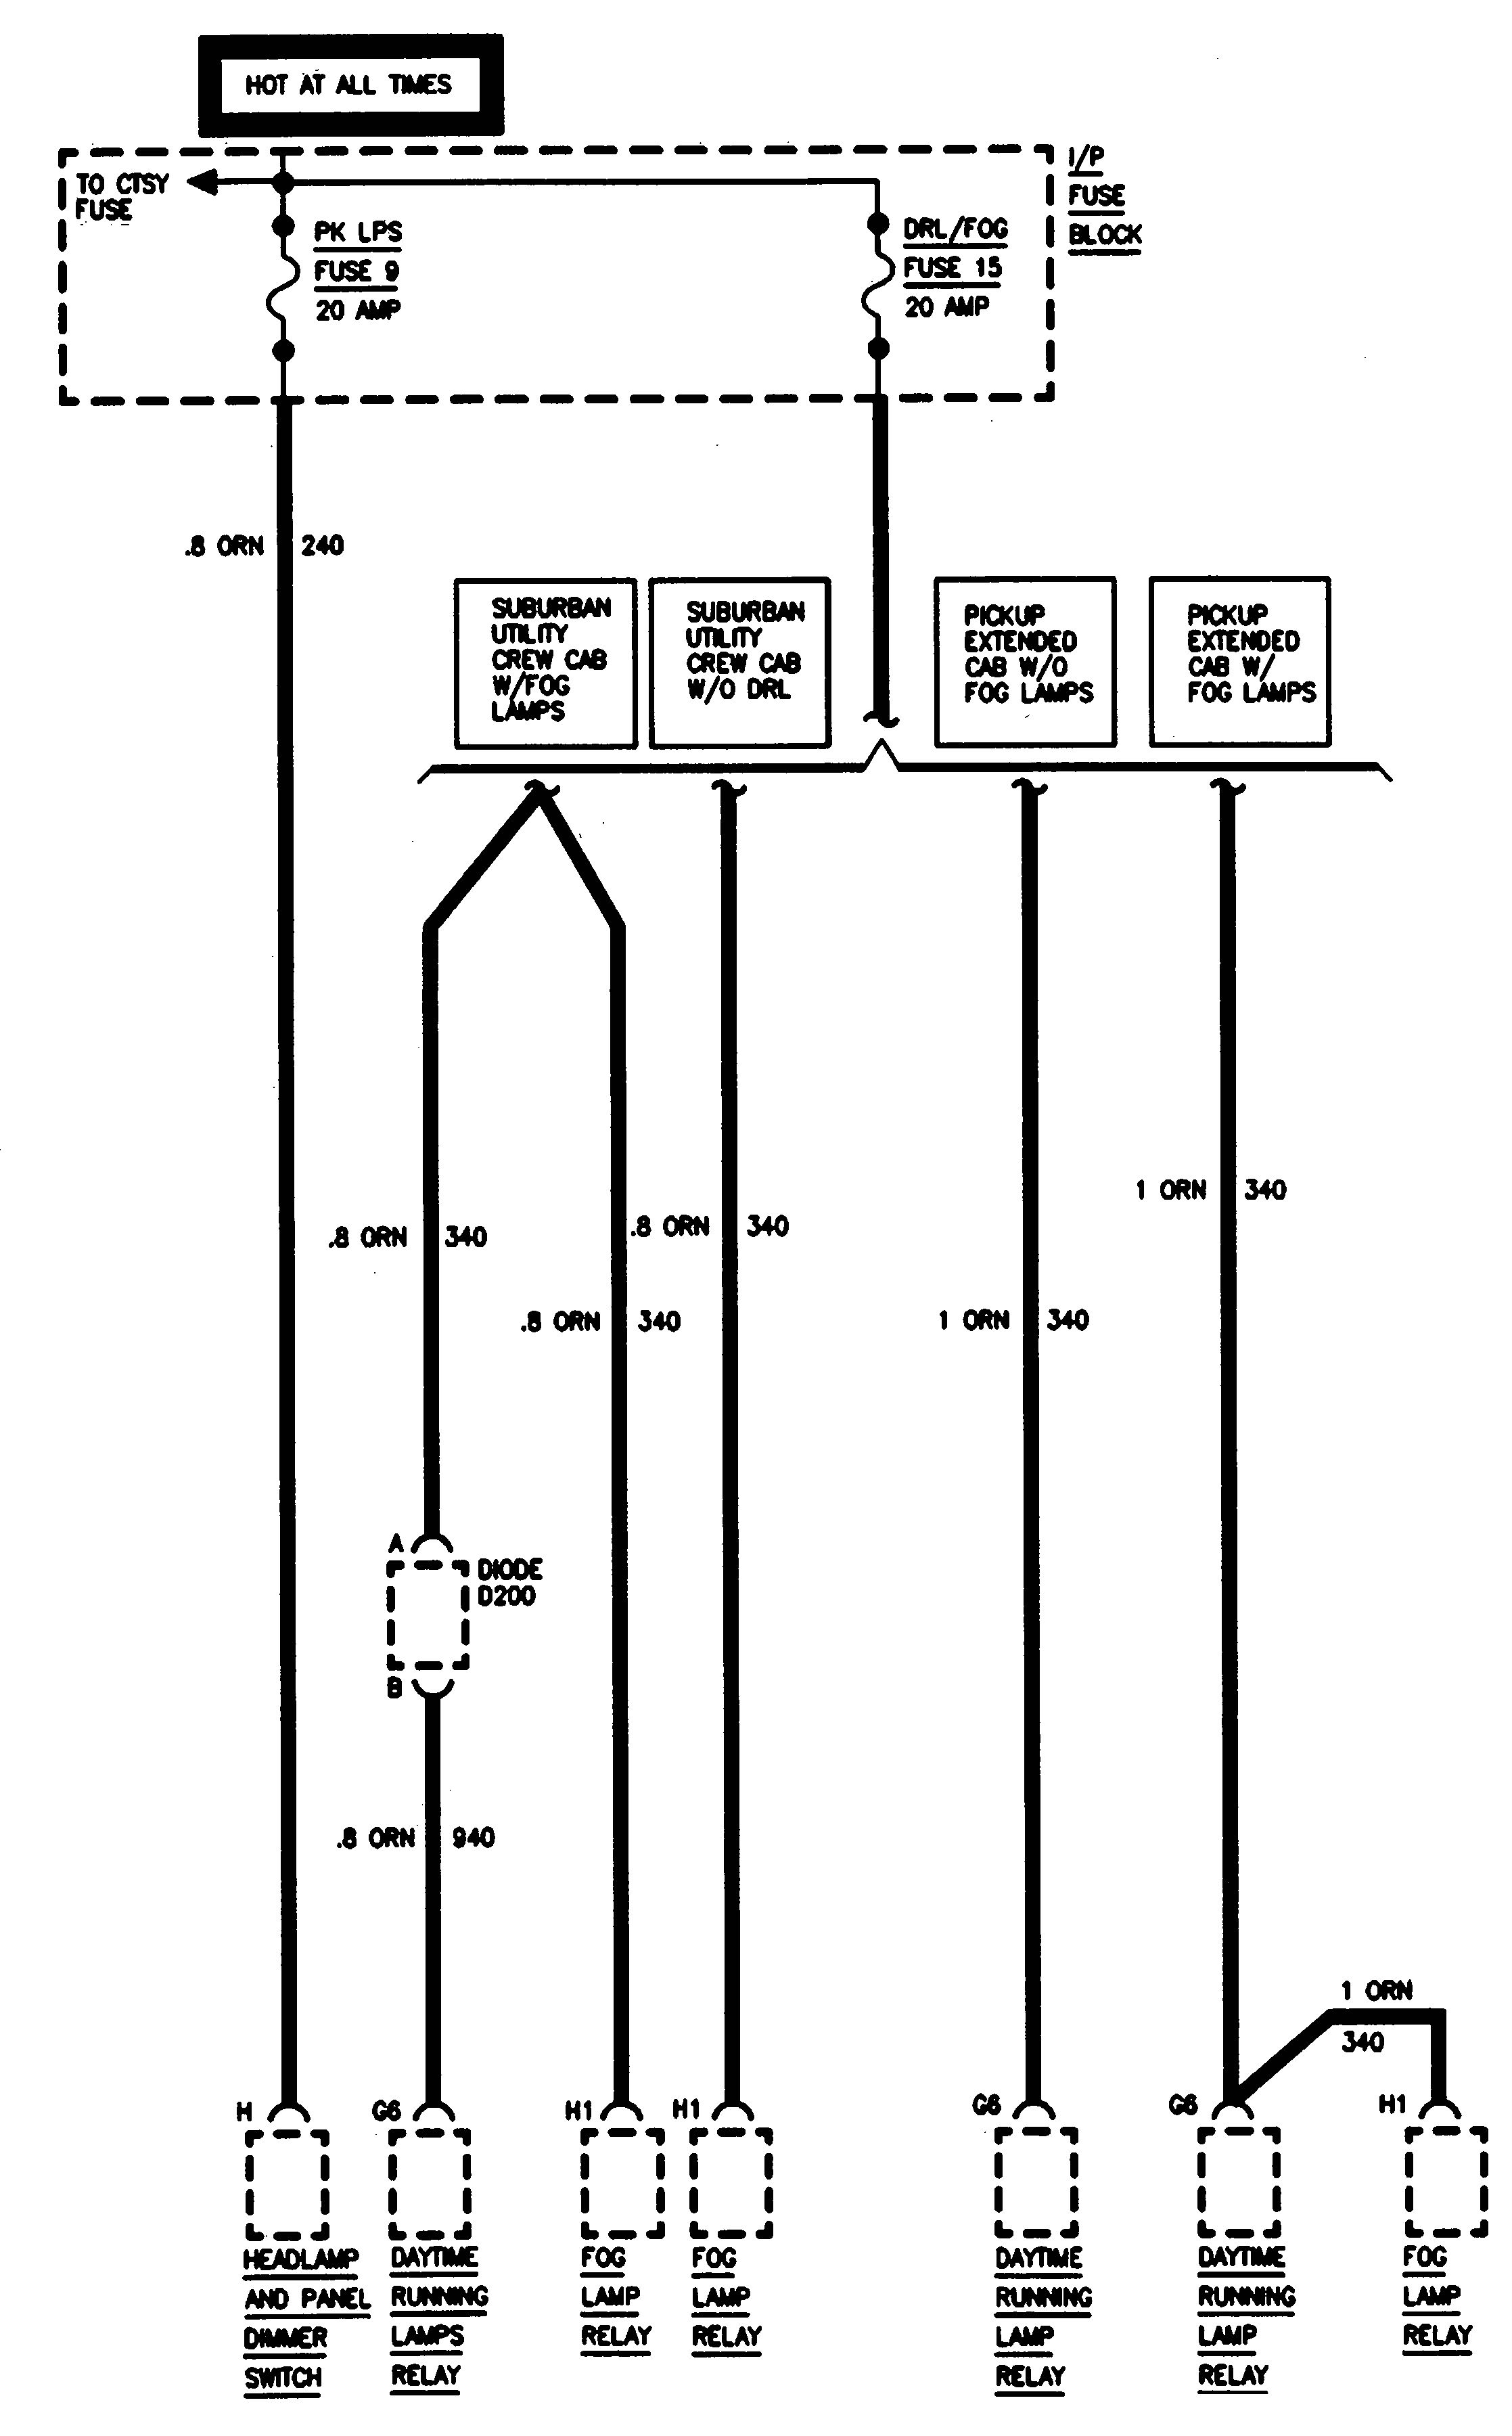 1995 Gmc Sierra Wiring Diagram from www.carknowledge.info